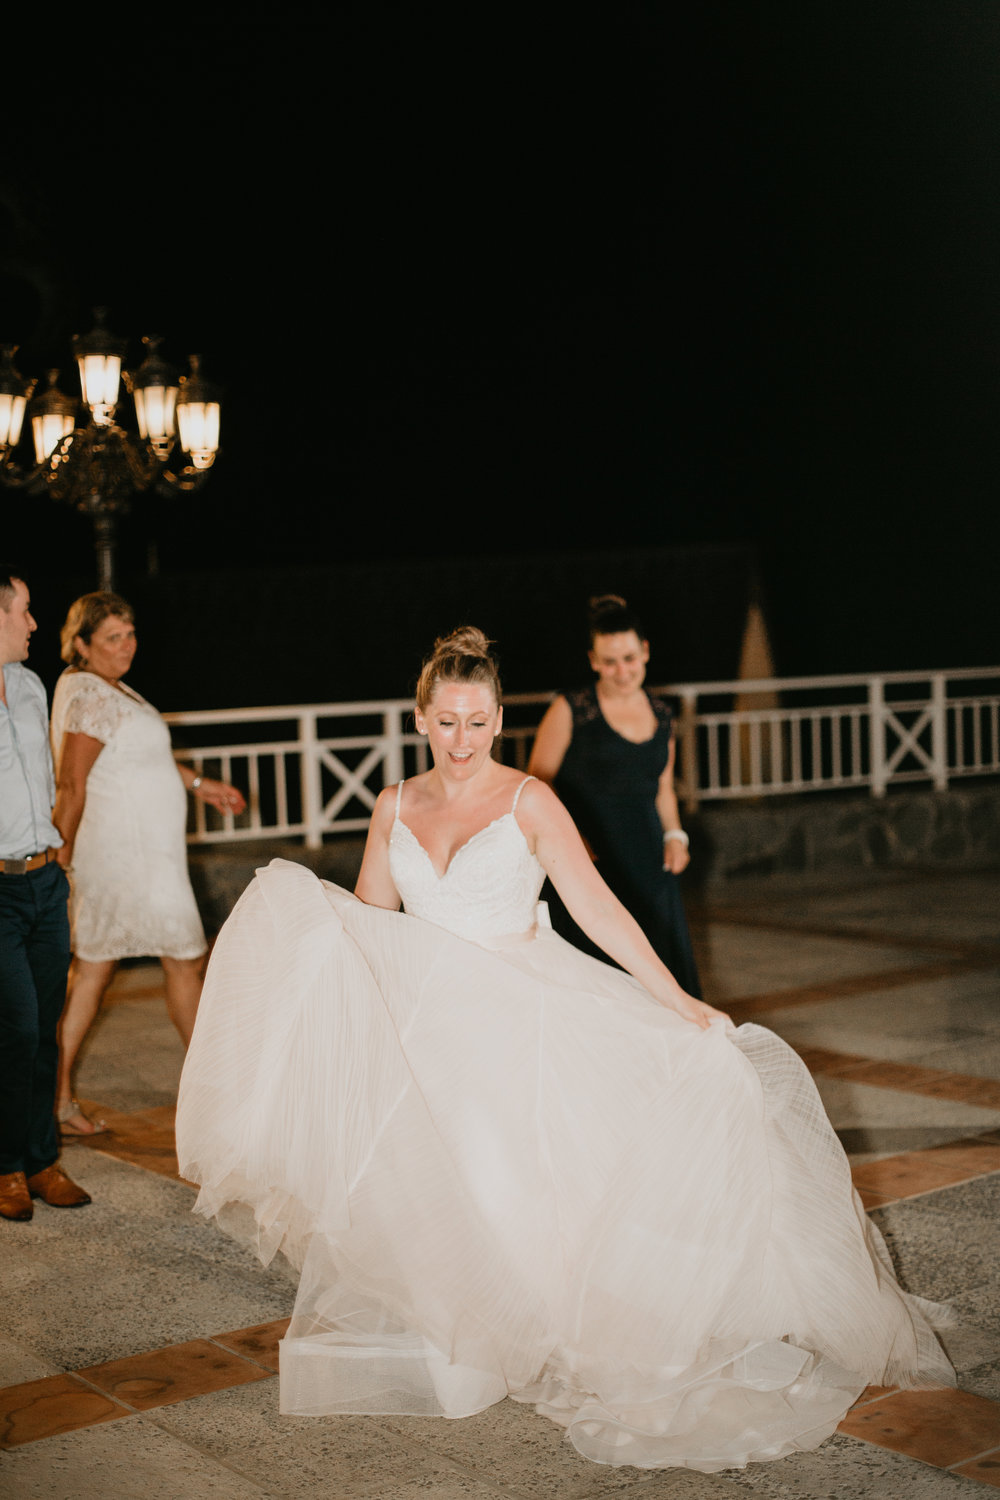 nicole-daacke-photography-destination-wedding-in-st-lucia-sandals-la-toc-intimate-island-wedding-carribean-elopement-photographer-chill-island-wedding-171.jpg